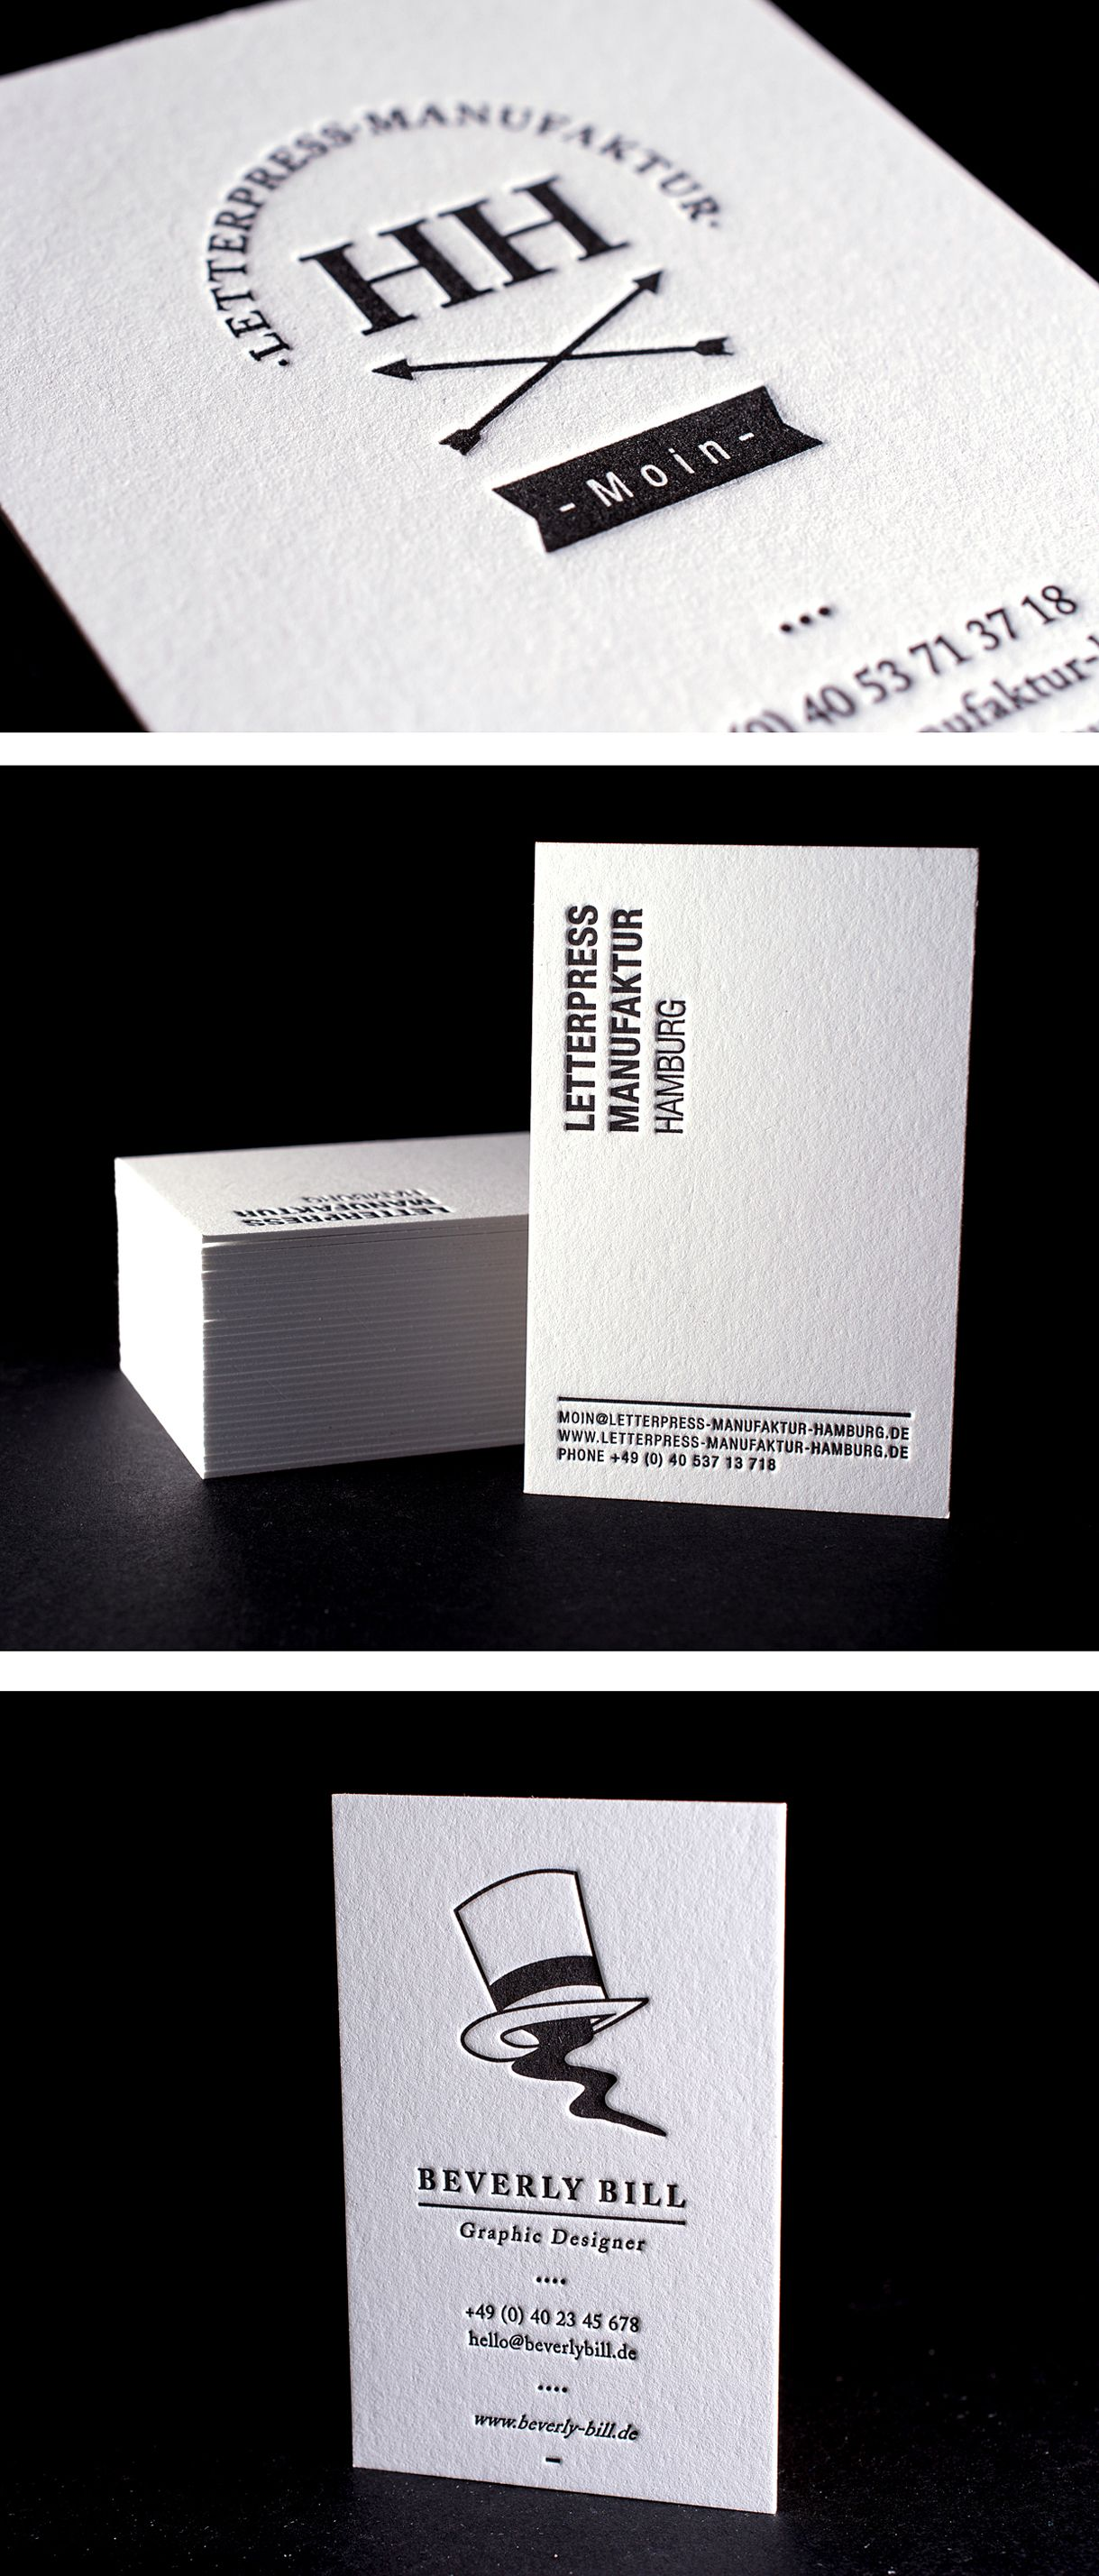 650 gsm Letterpress paper with 1.3 volume and deep impression ...